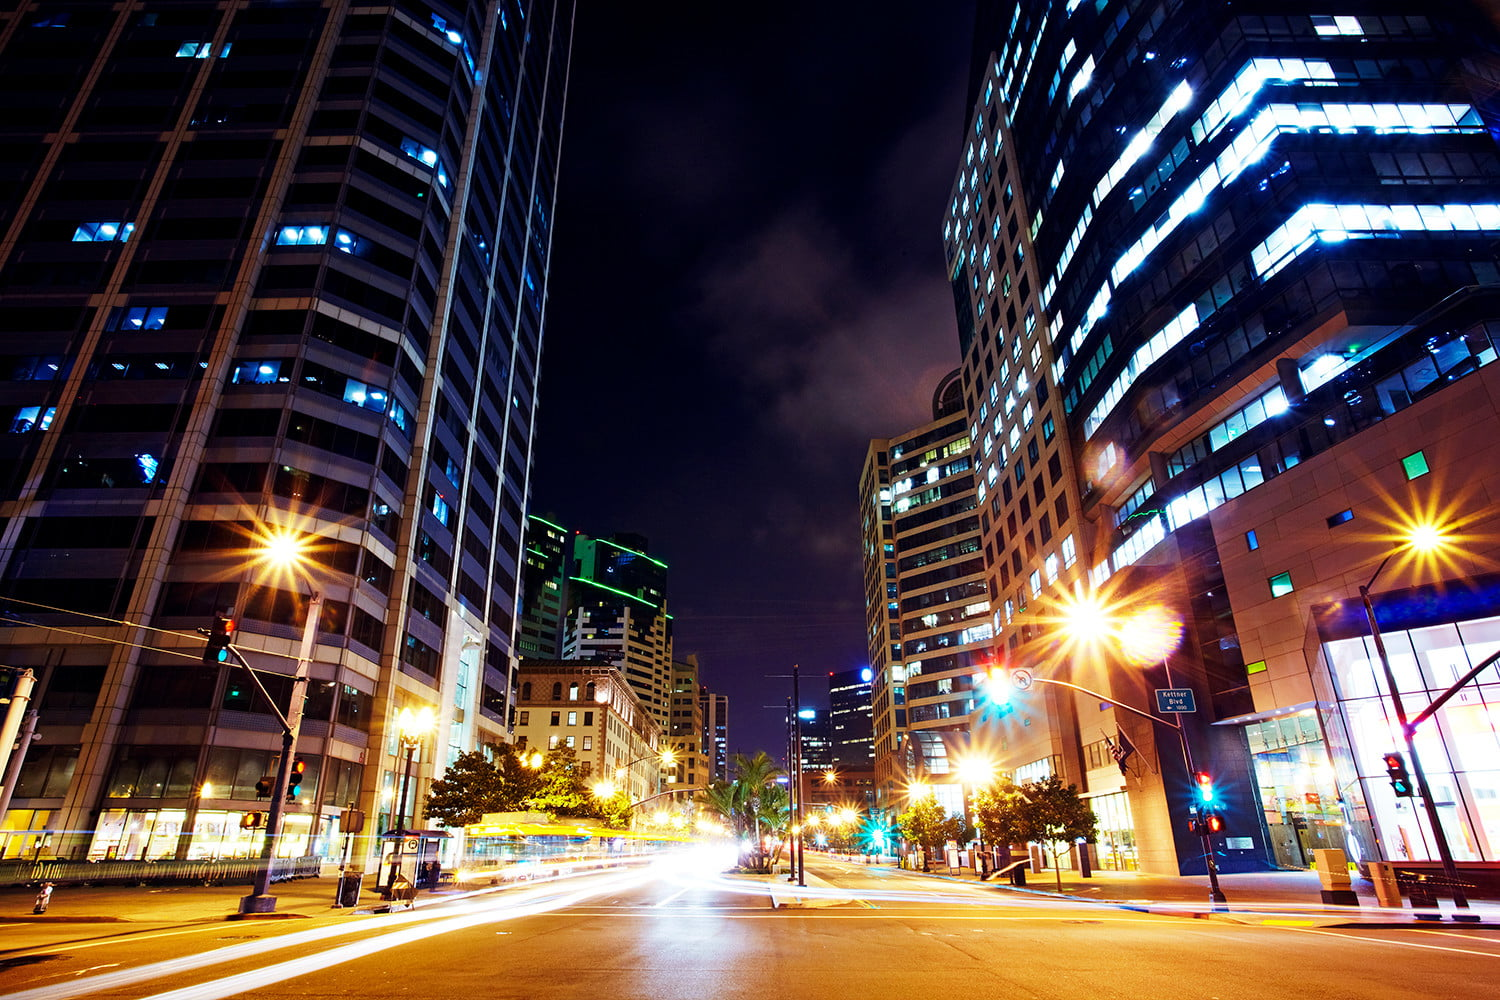 How 3,000 streetlights turned San Diego into America's smartest city